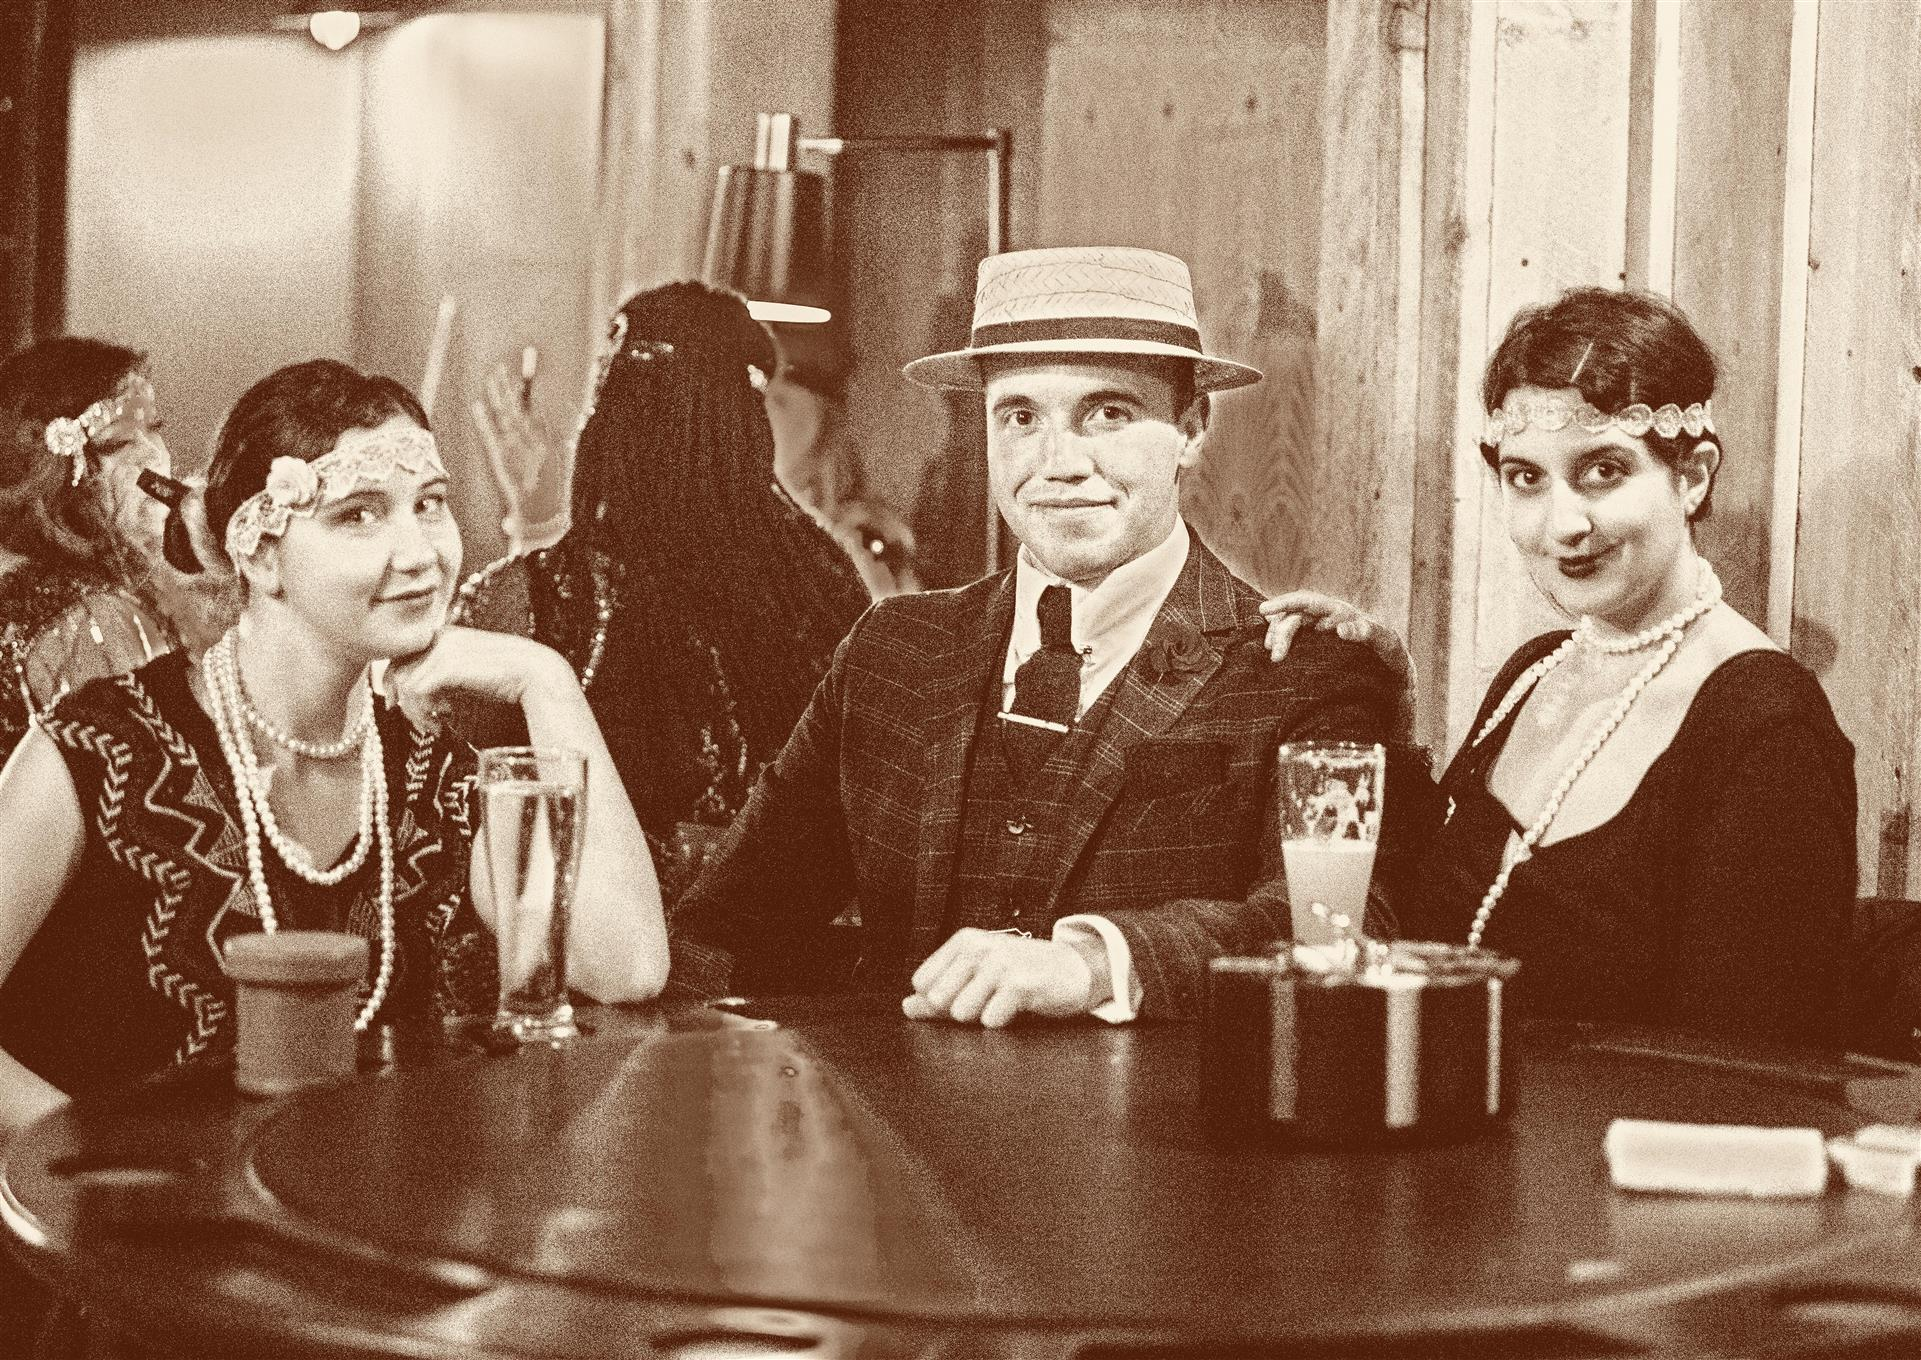 1920s picture of two women and a man sitting at a table